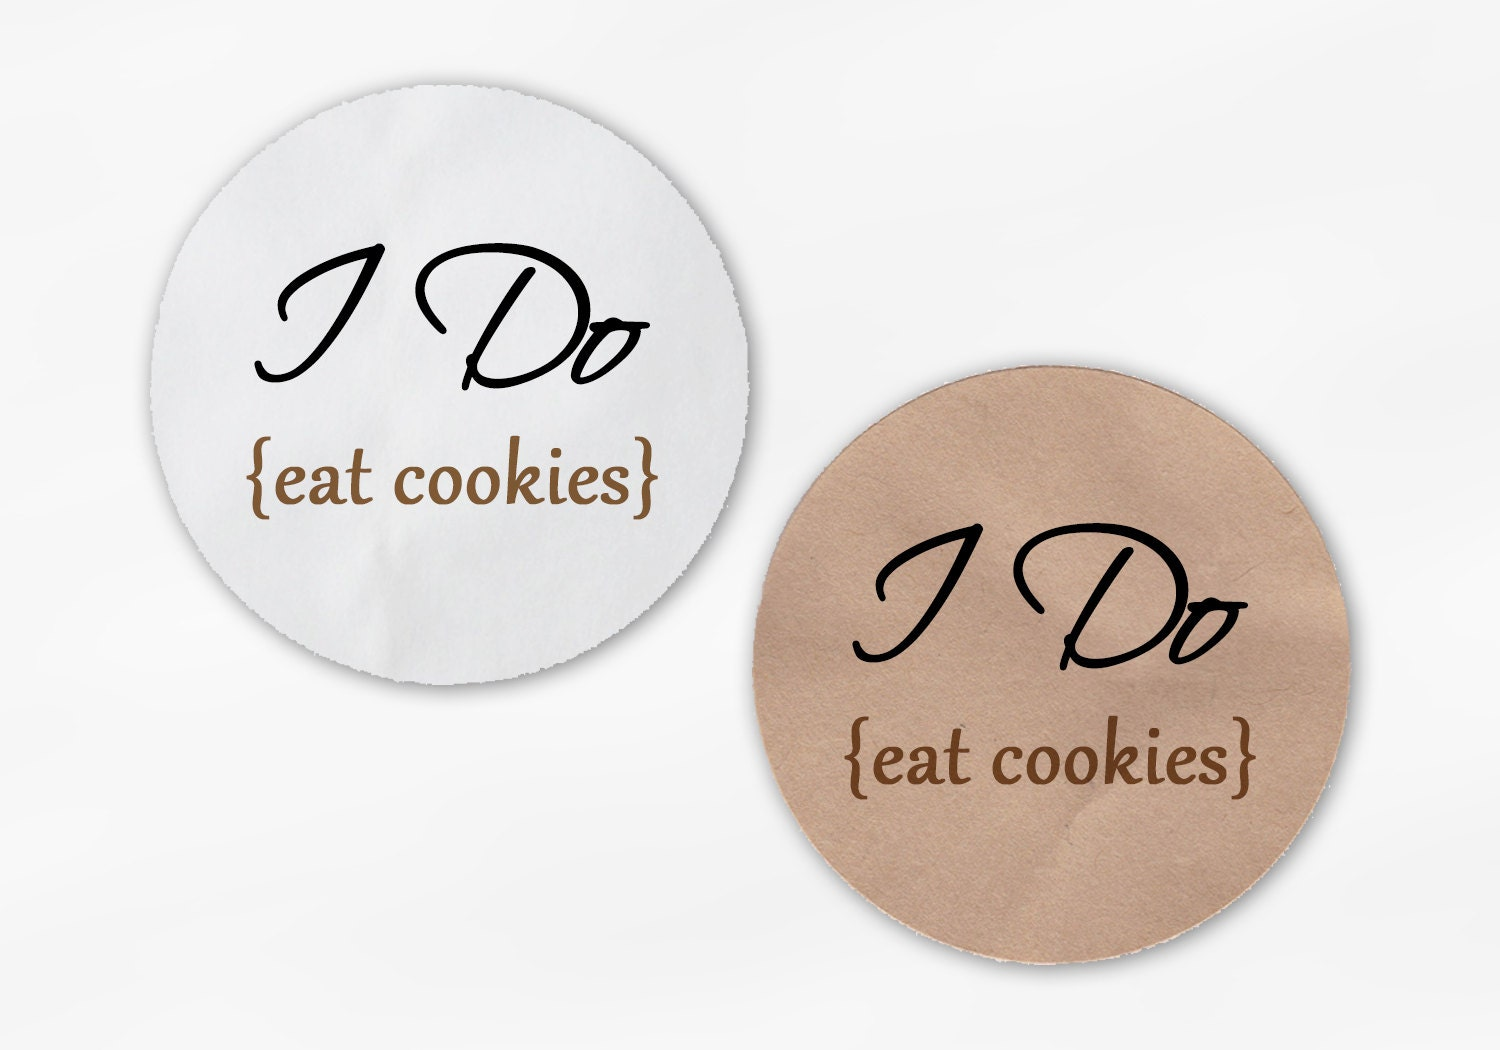 I Do Eat Cookies Wedding Favor Stickers - Black and Tan Custom White ...